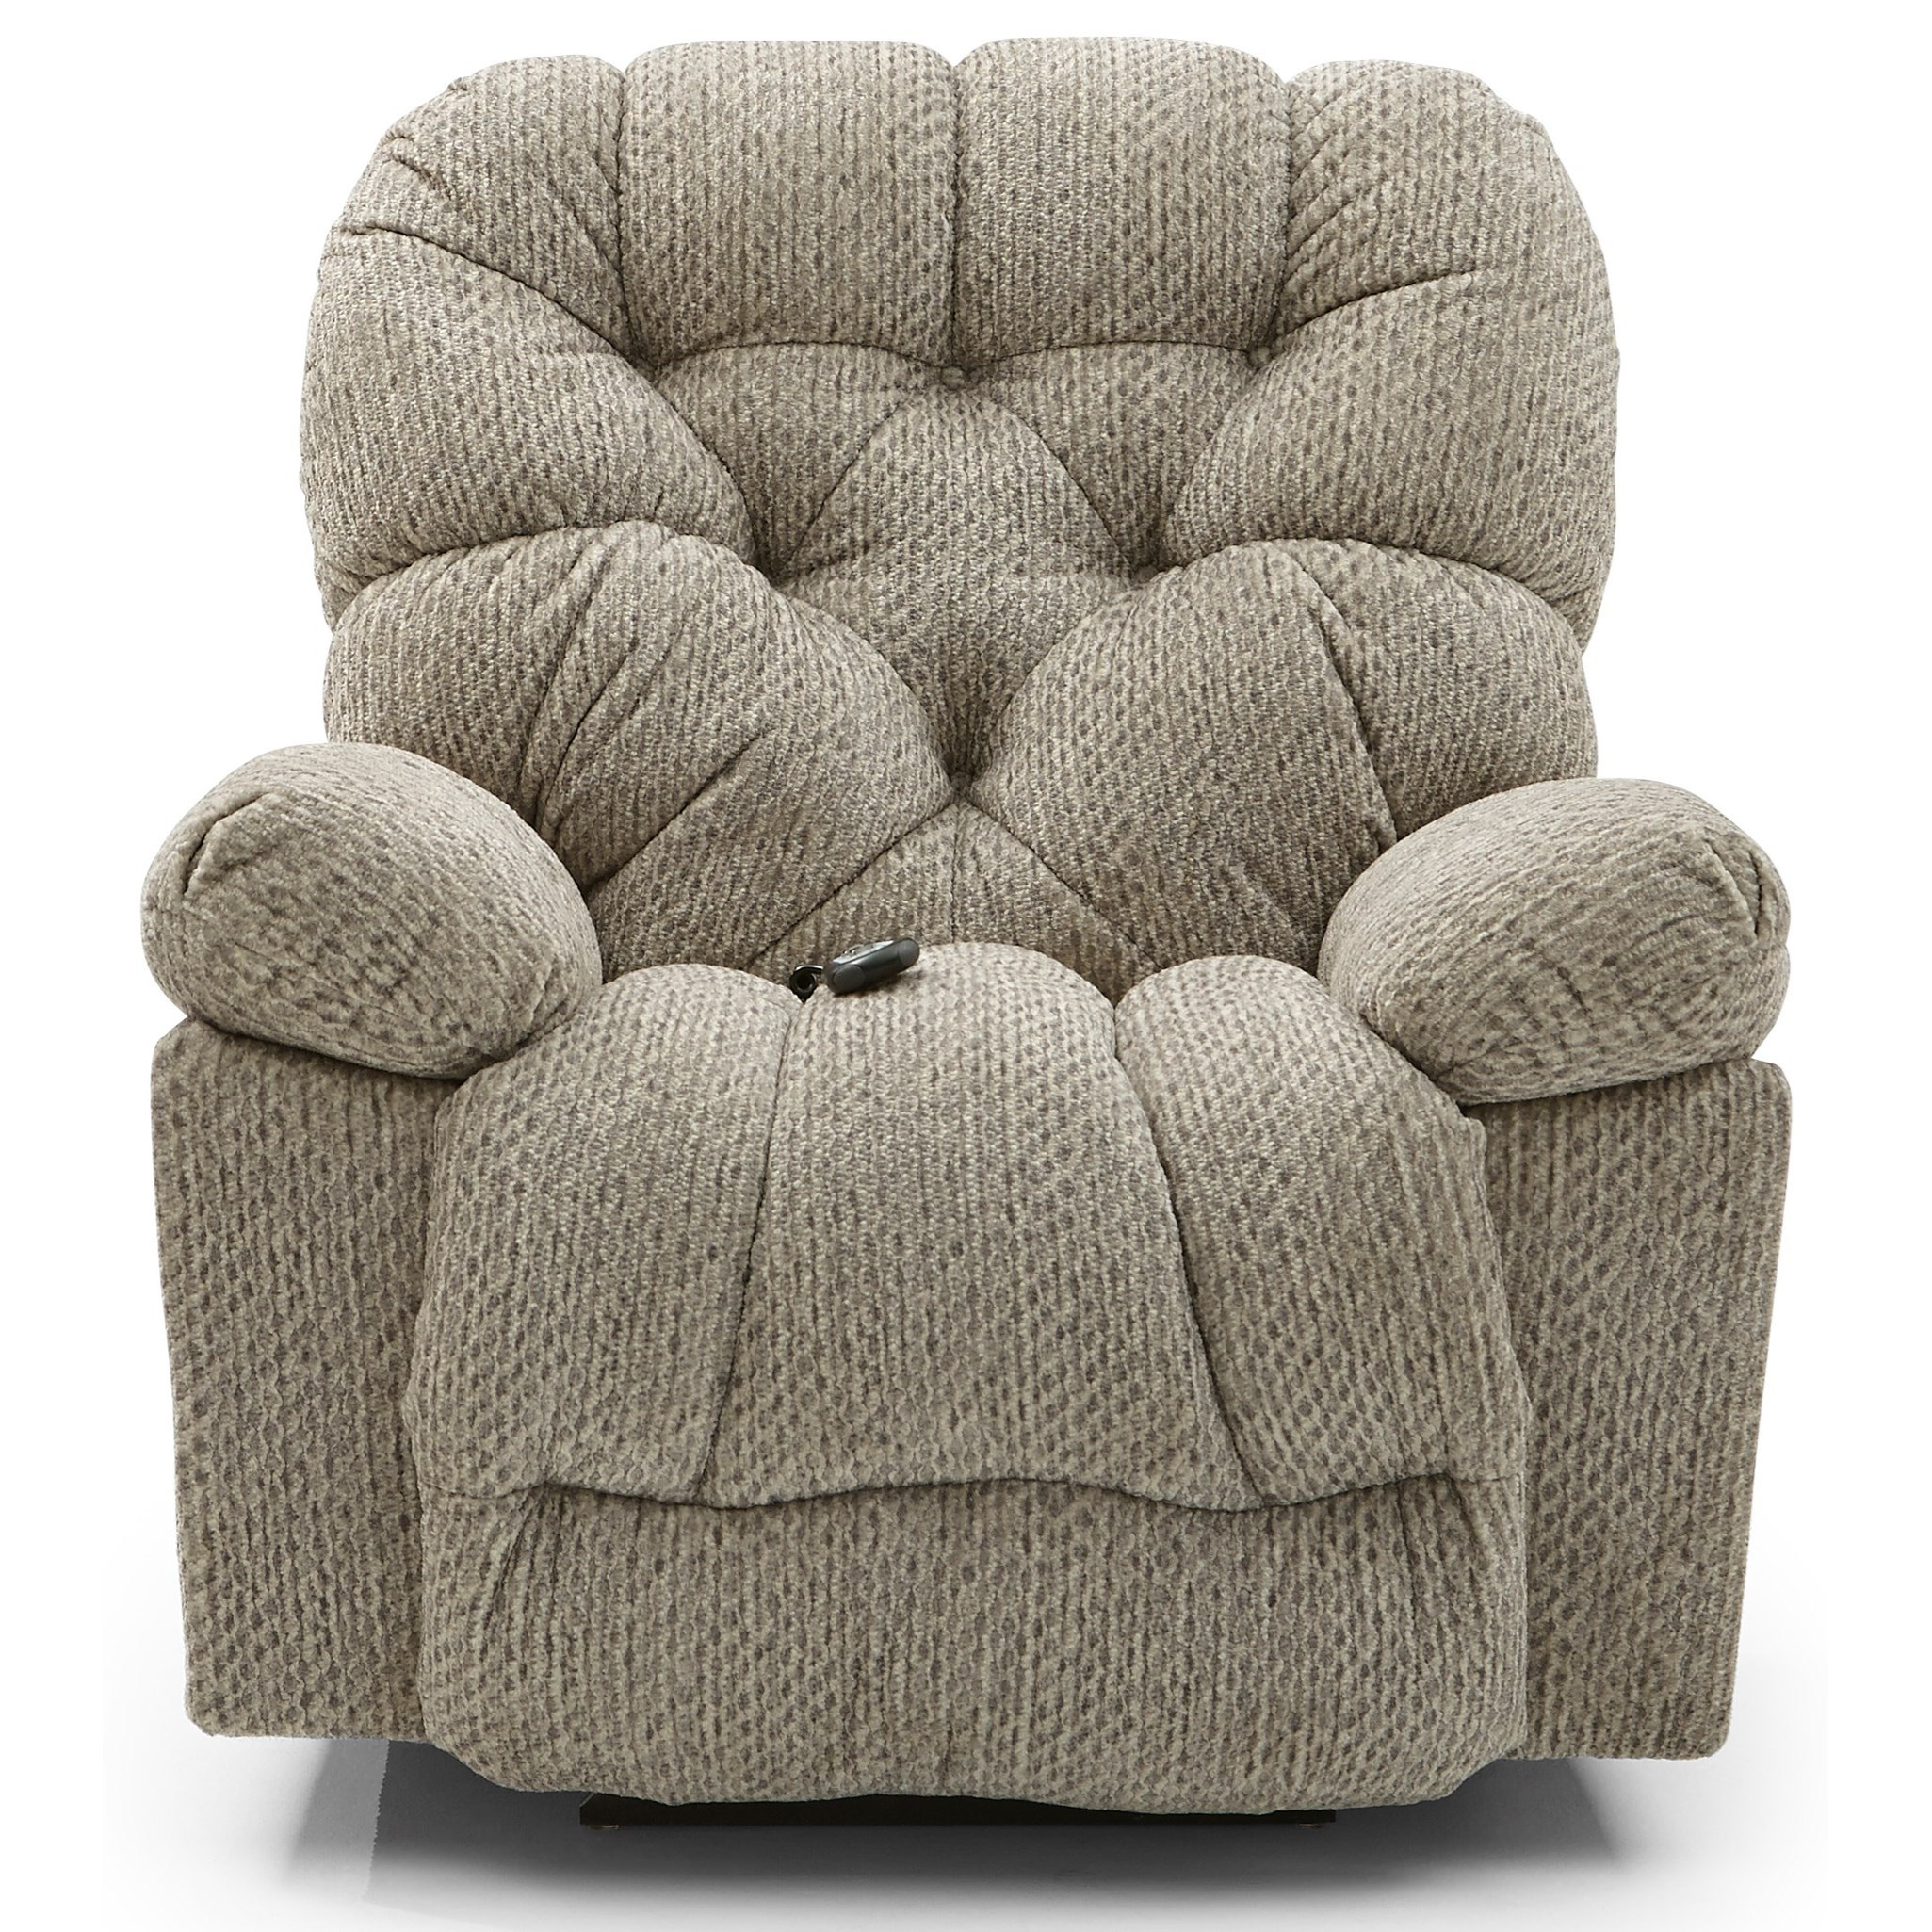 Bolt Power Space Saver Recliner by Best Home Furnishings at Best Home Furnishings